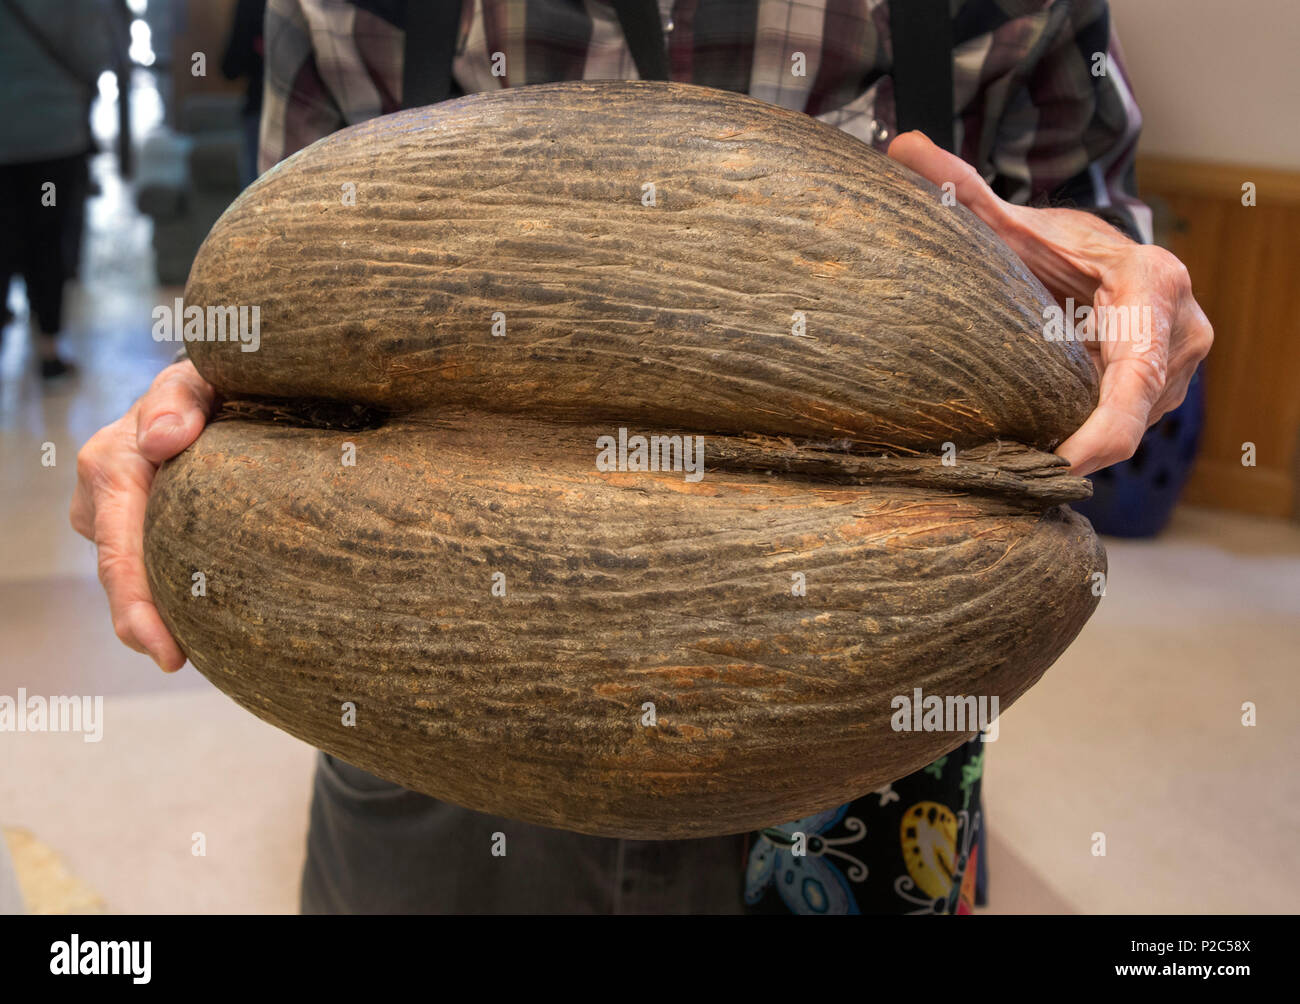 Man holding a Coco de Mer palm tree coconut, the largest seed of any plant in the world.  From the Seychelles Islands in the Indian Ocean.. - Stock Image